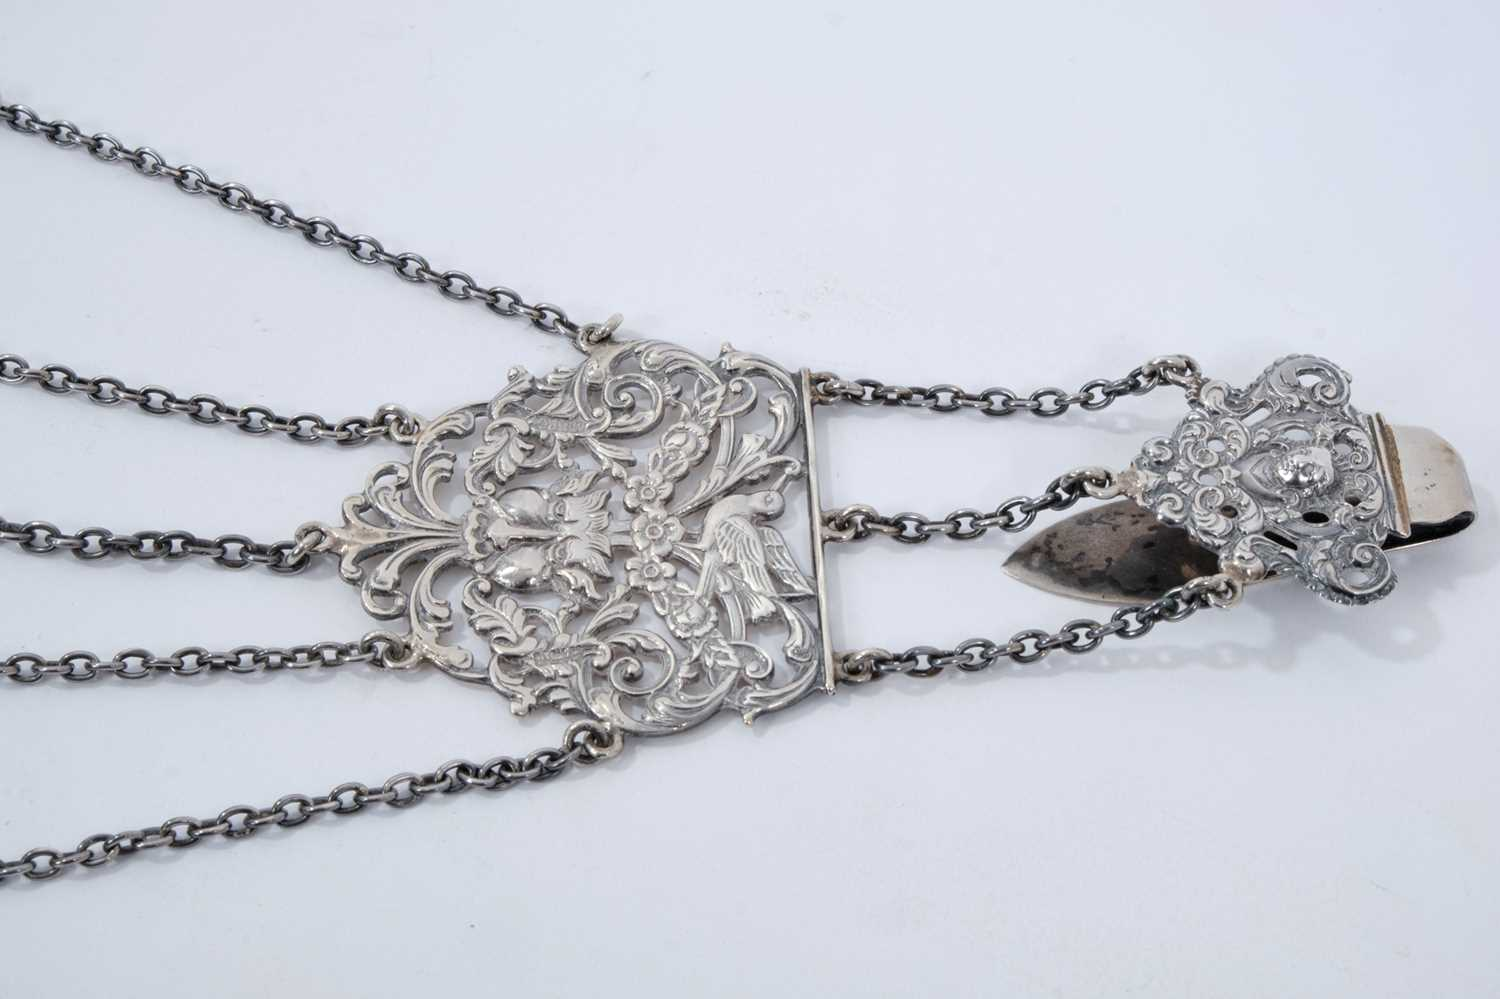 Late Victorian silver sewing chatelaine with ornate cast belt hook and five suspension chains - Image 4 of 4